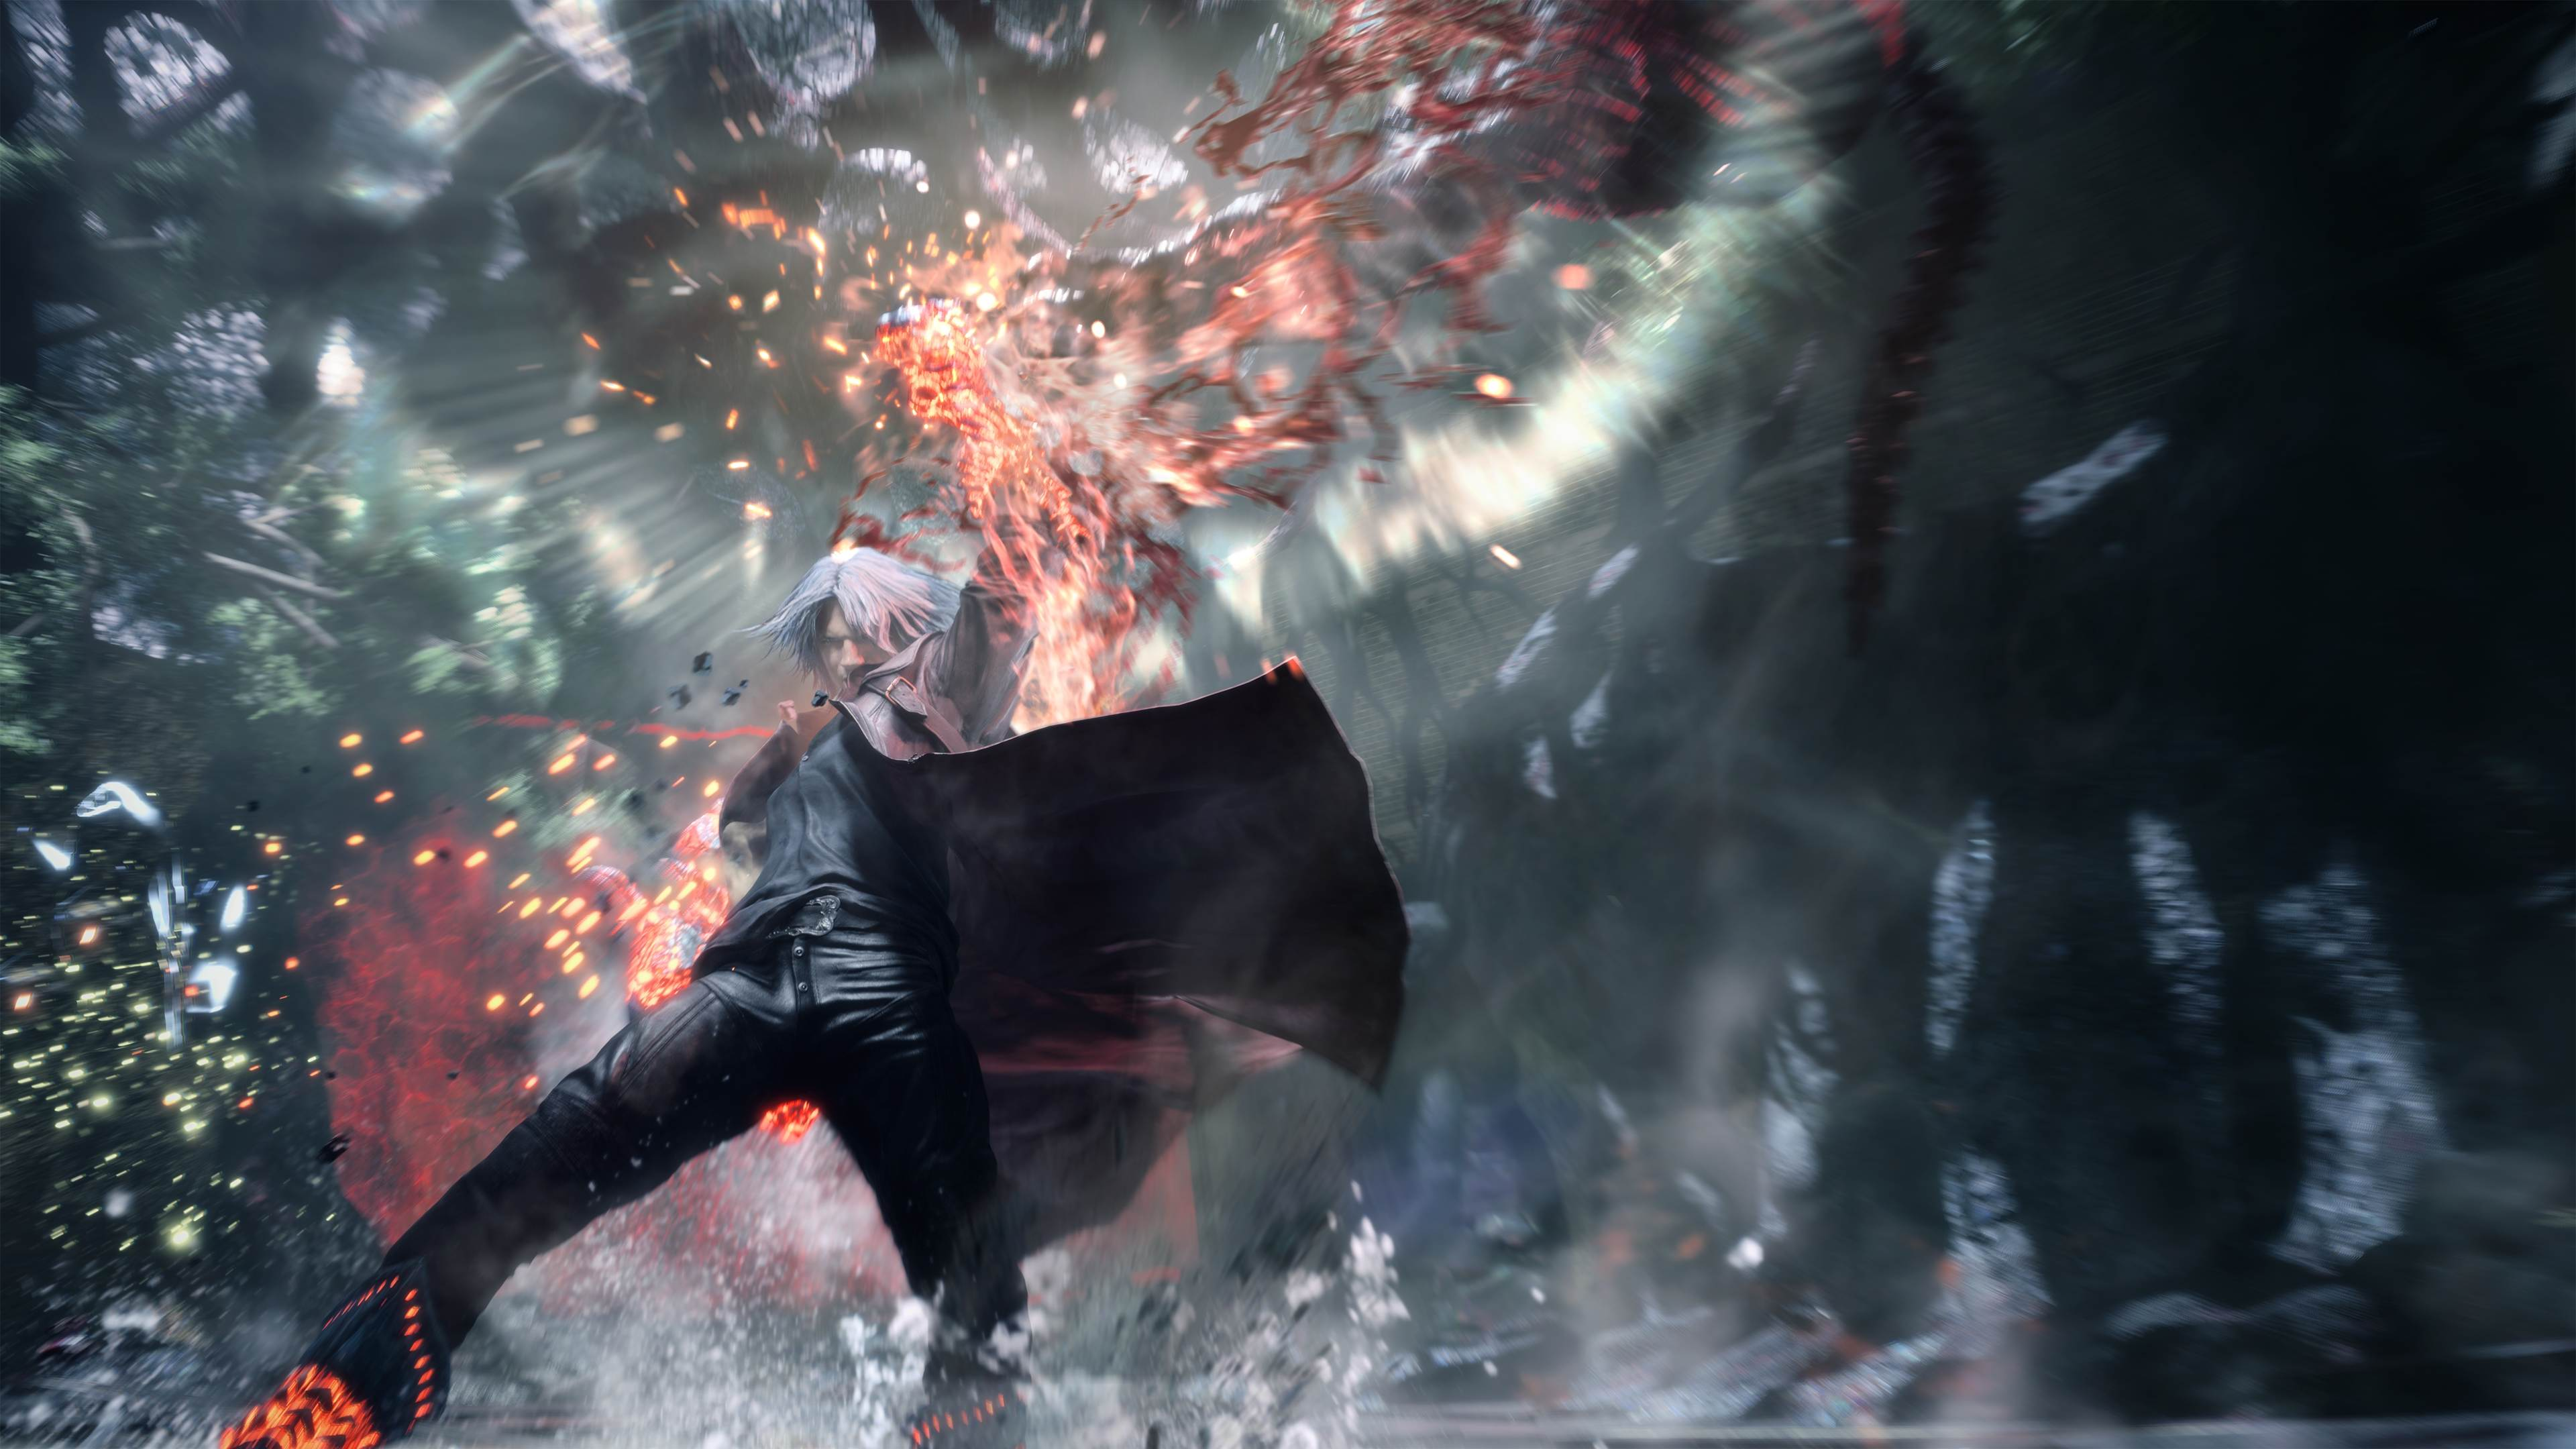 devil may cry 5 4k 2019 game 1537692520 - Devil May Cry 5 4k 2019 Game - hd-wallpapers, games wallpapers, devil may cry 5 wallpapers, 4k-wallpapers, 2019 games wallpapers